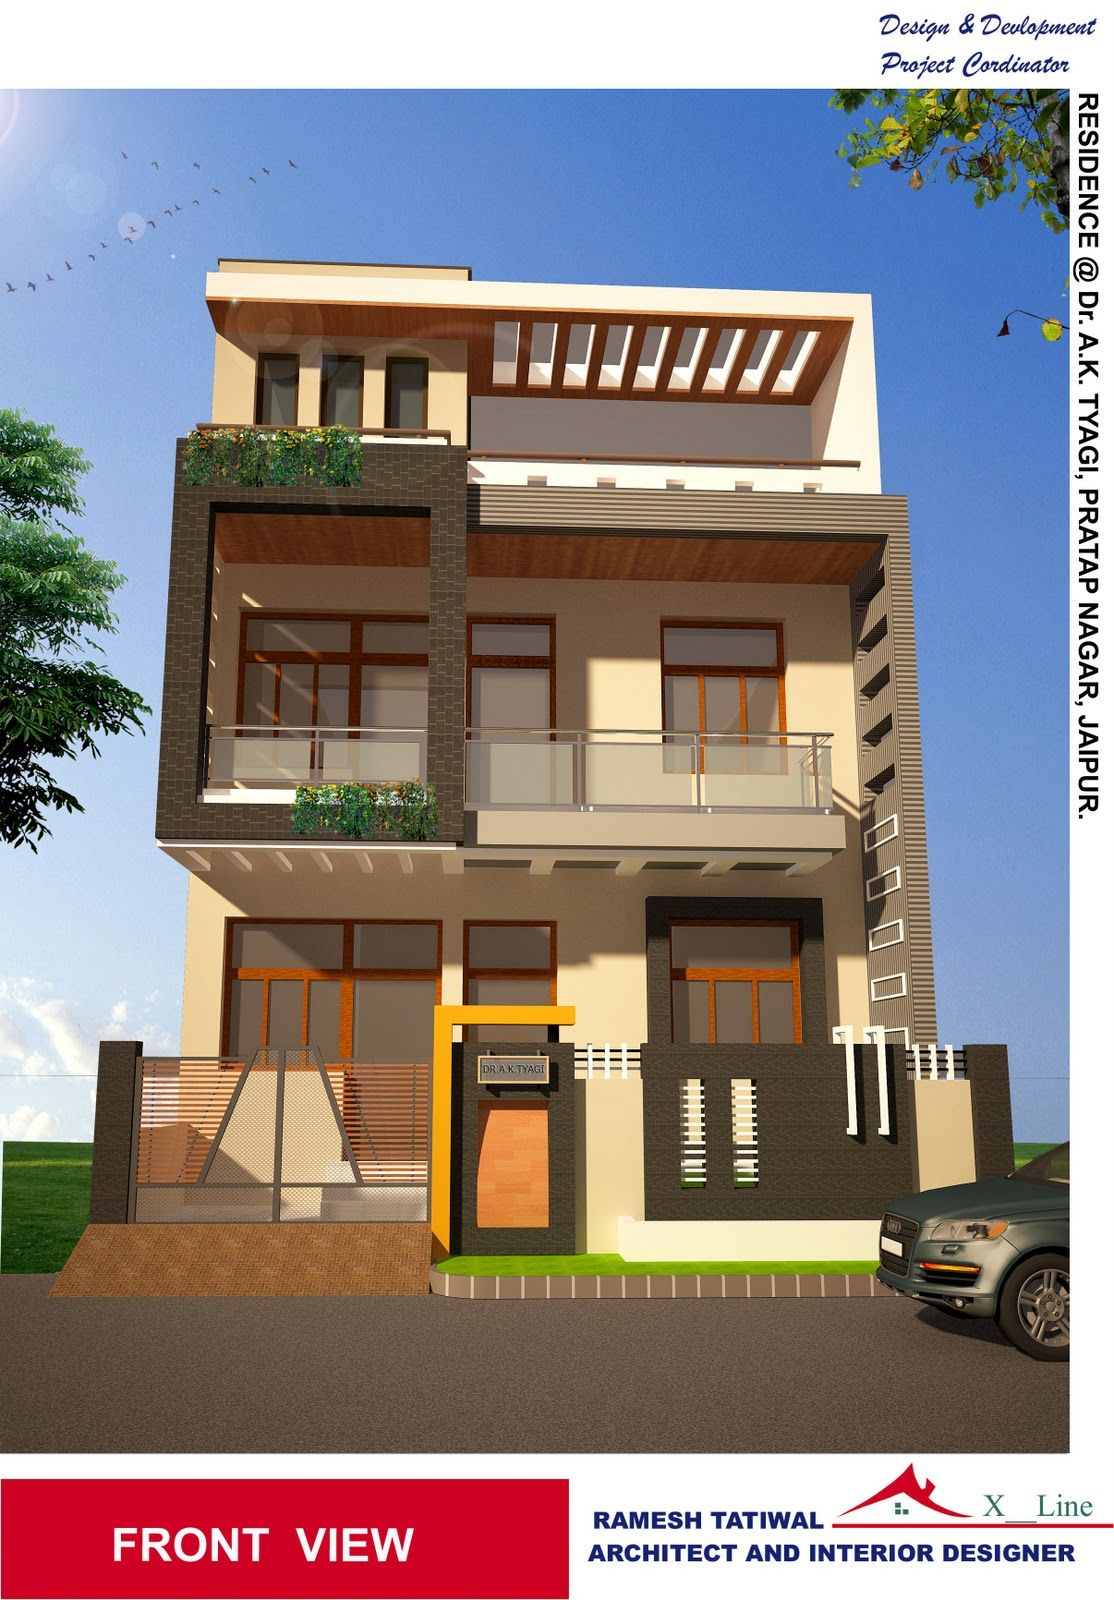 N Home Design Modern Front Elevation Ramesh : Housedesigns modern indian home architecture design from